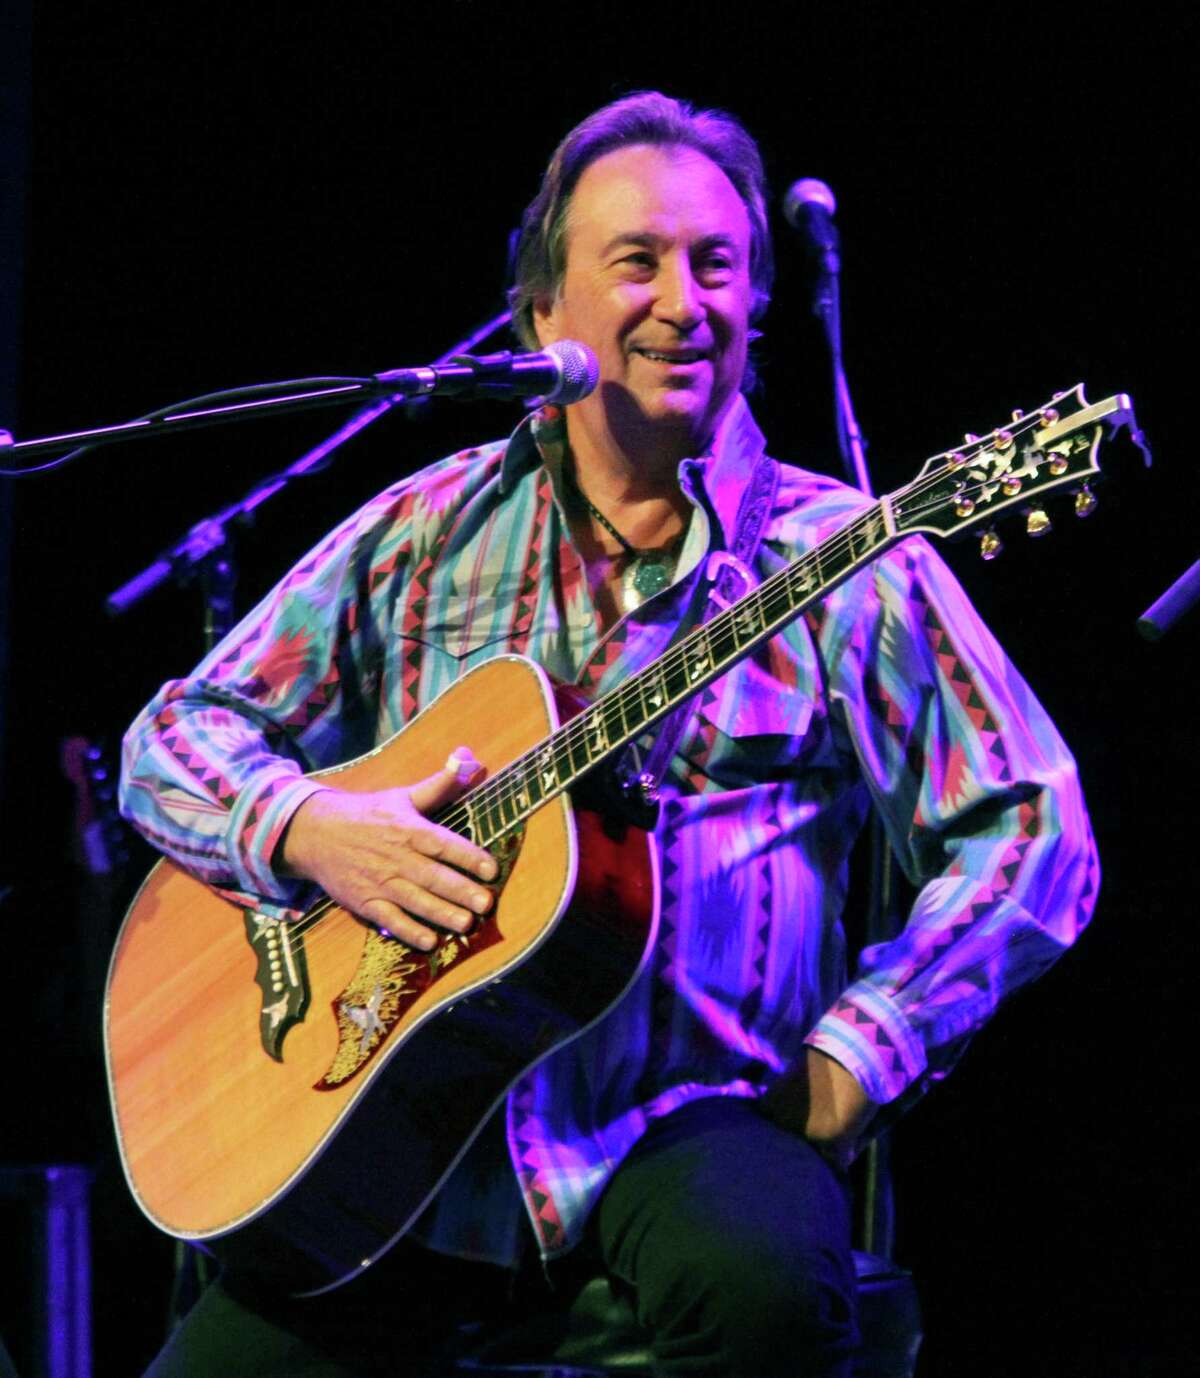 Jim Messina is set to perform March 8 at Infinity Music Hall in Hartford. To reserve seats or for more information, call the Infinity Hall box office at 866-666-6306.